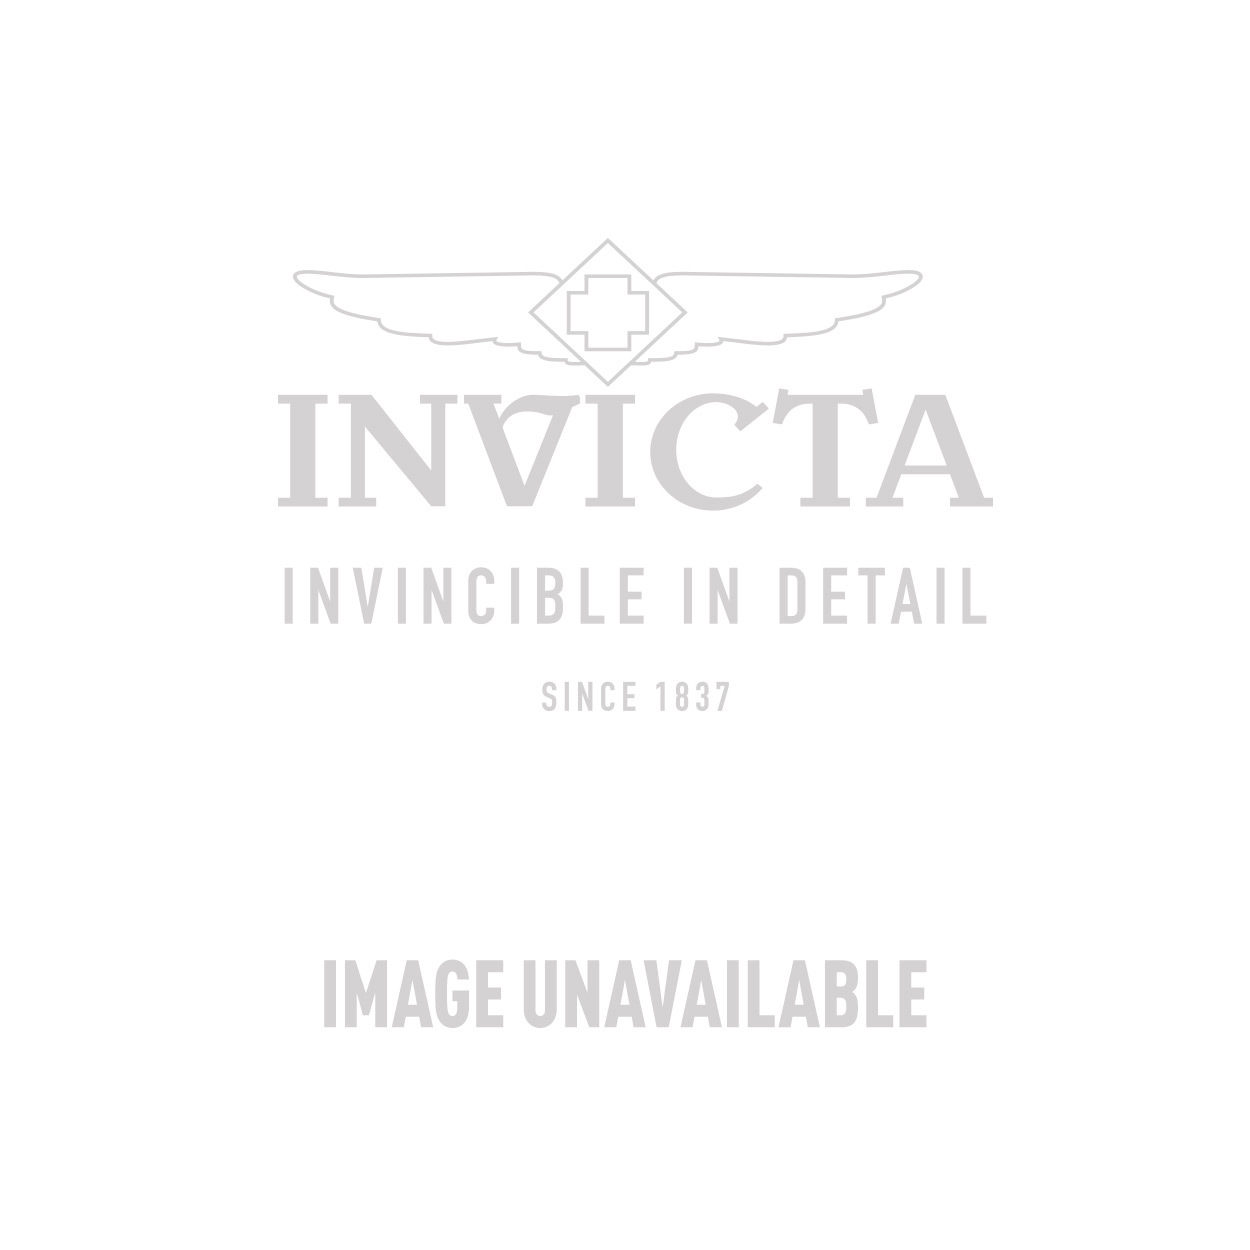 Invicta Corduba Swiss Movement Quartz Watch - Rose Gold, Stainless Steel case with Steel, Rose Gold tone Stainless Steel band - Model 17100